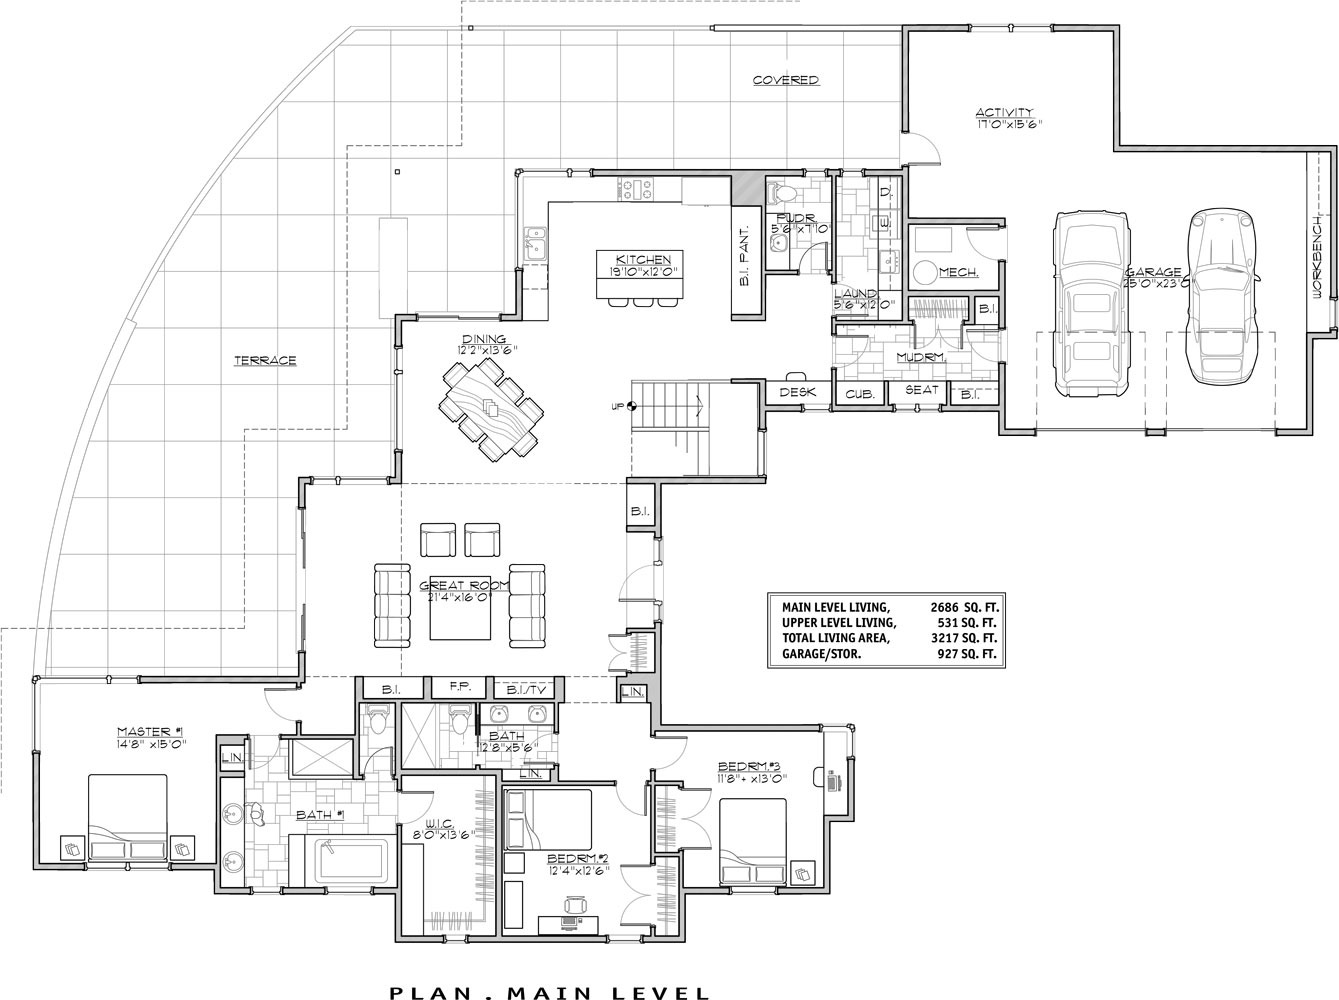 Luxury Contemporary 9044 - 3 Bedrooms and 3 Baths | The House Designers